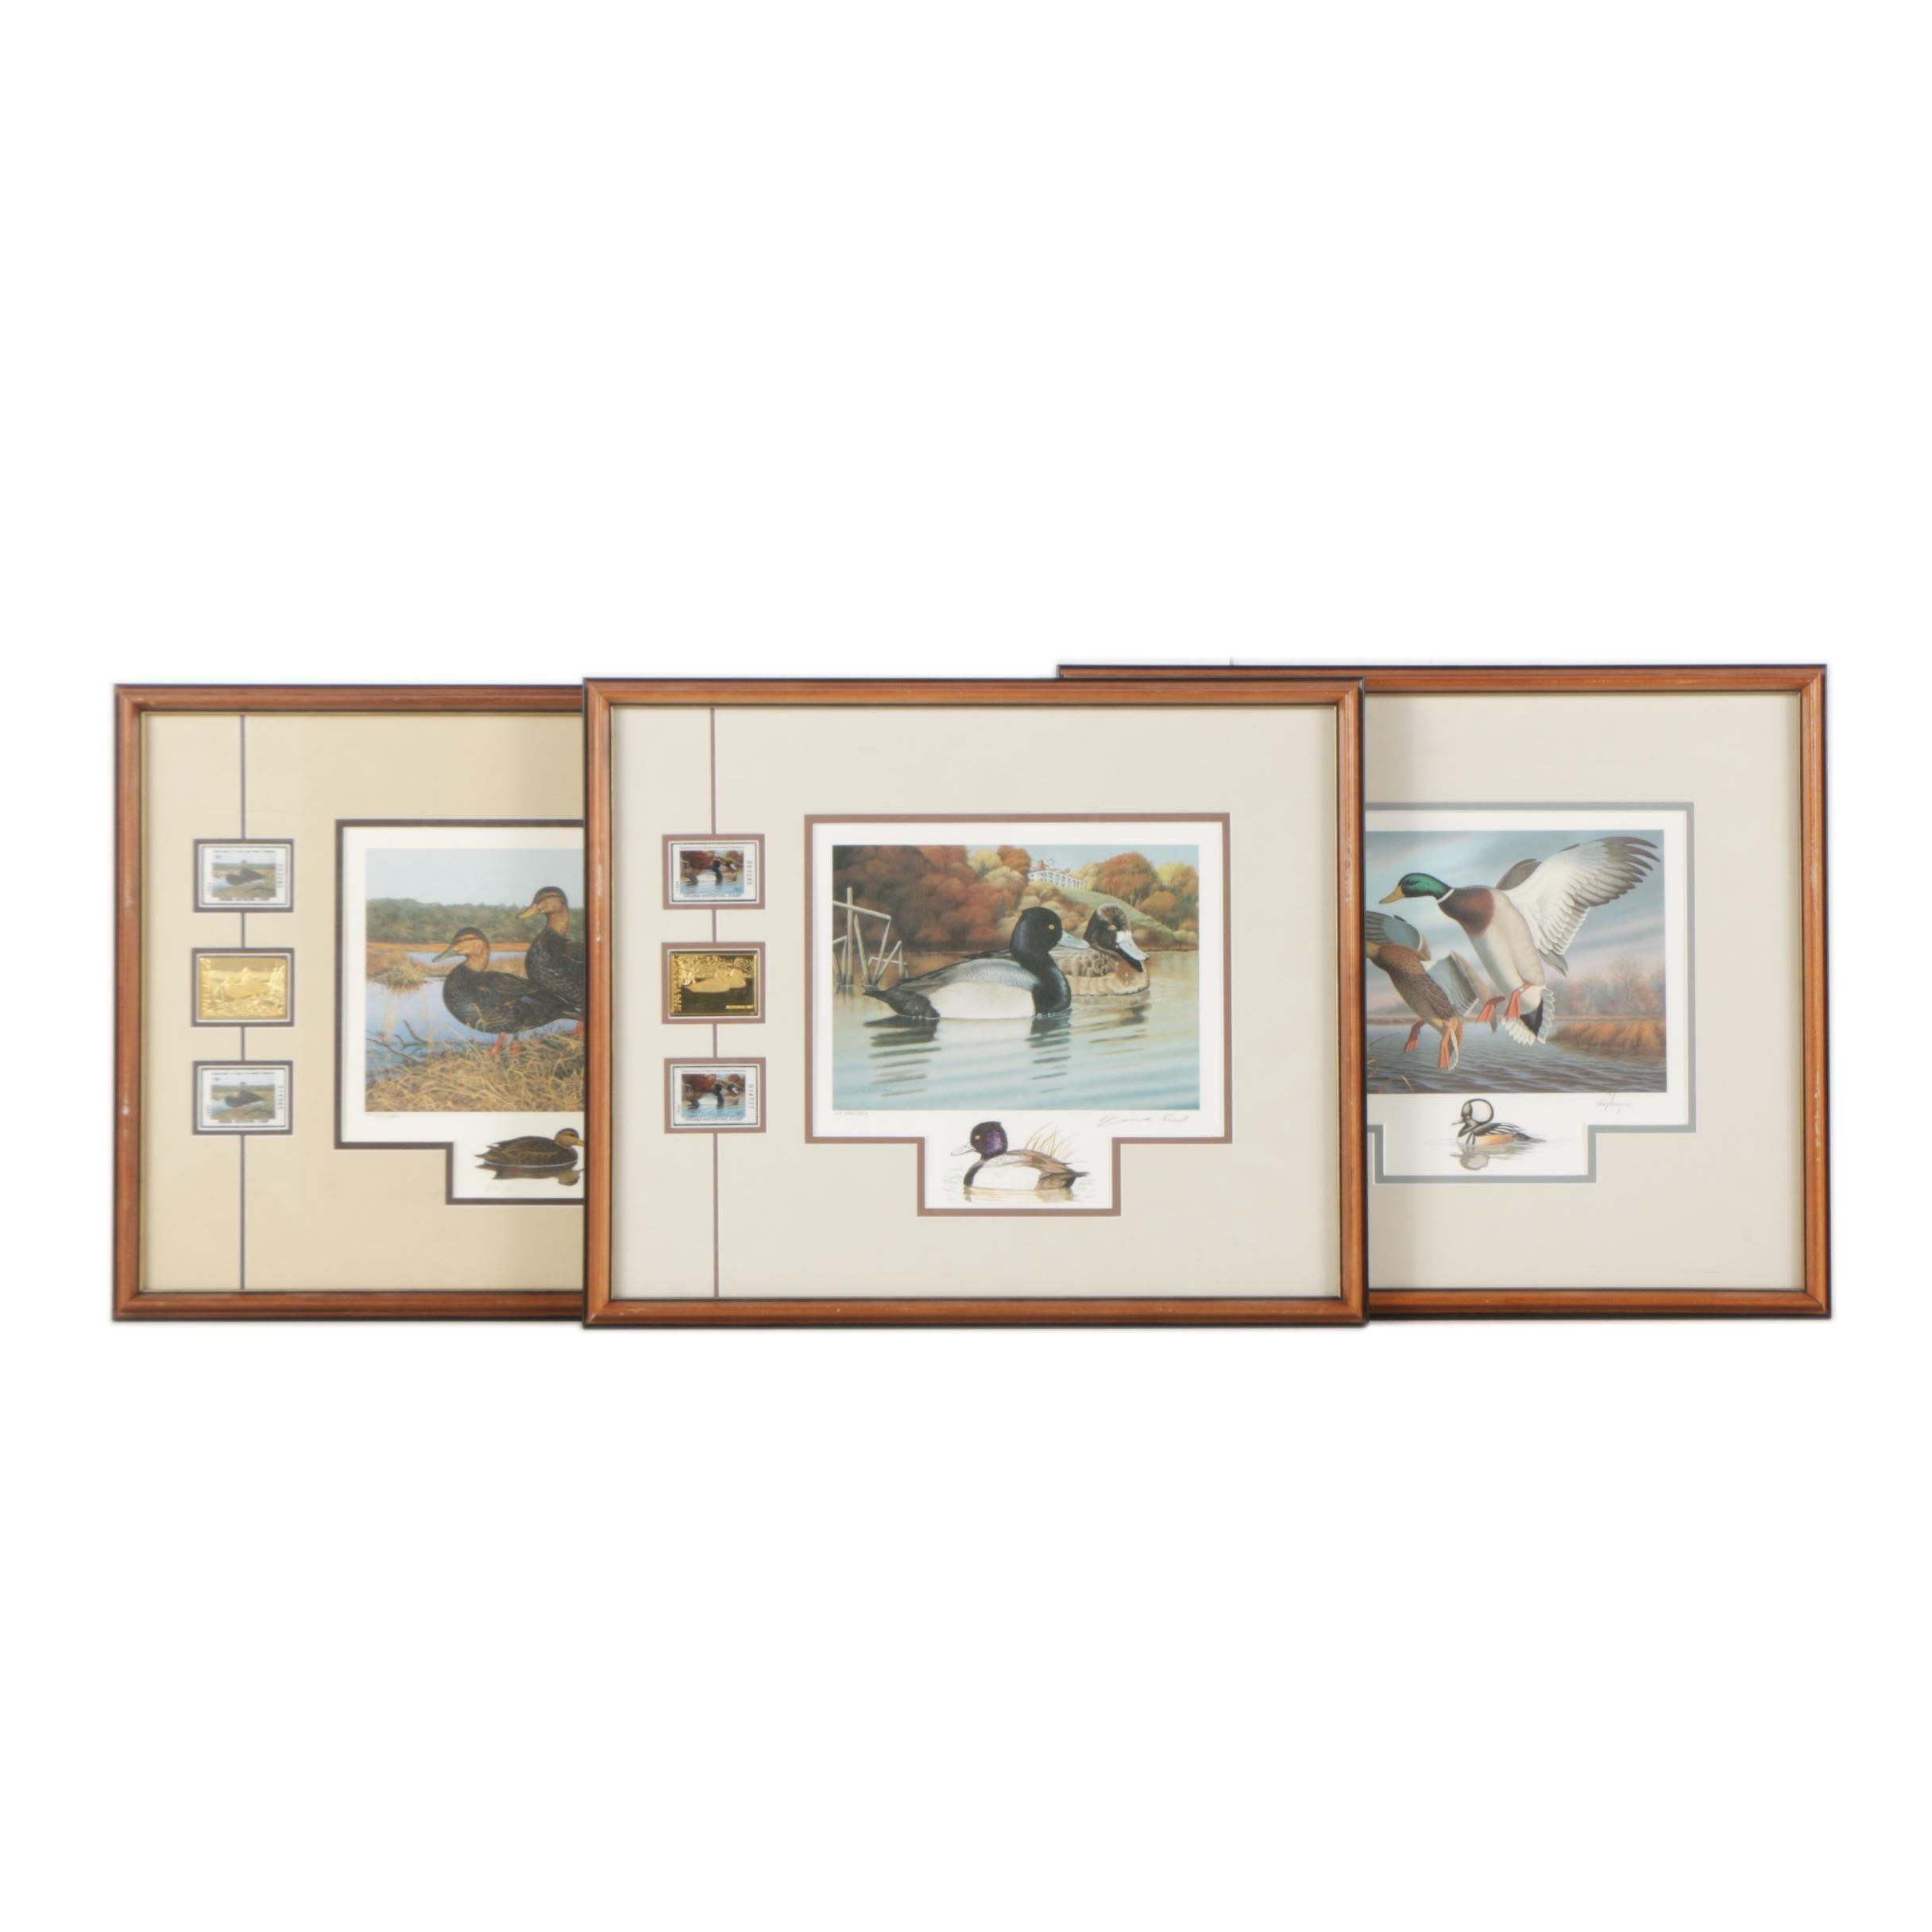 Limited Edition Offset Lithographs of Waterfowl with Commemorative Stamps